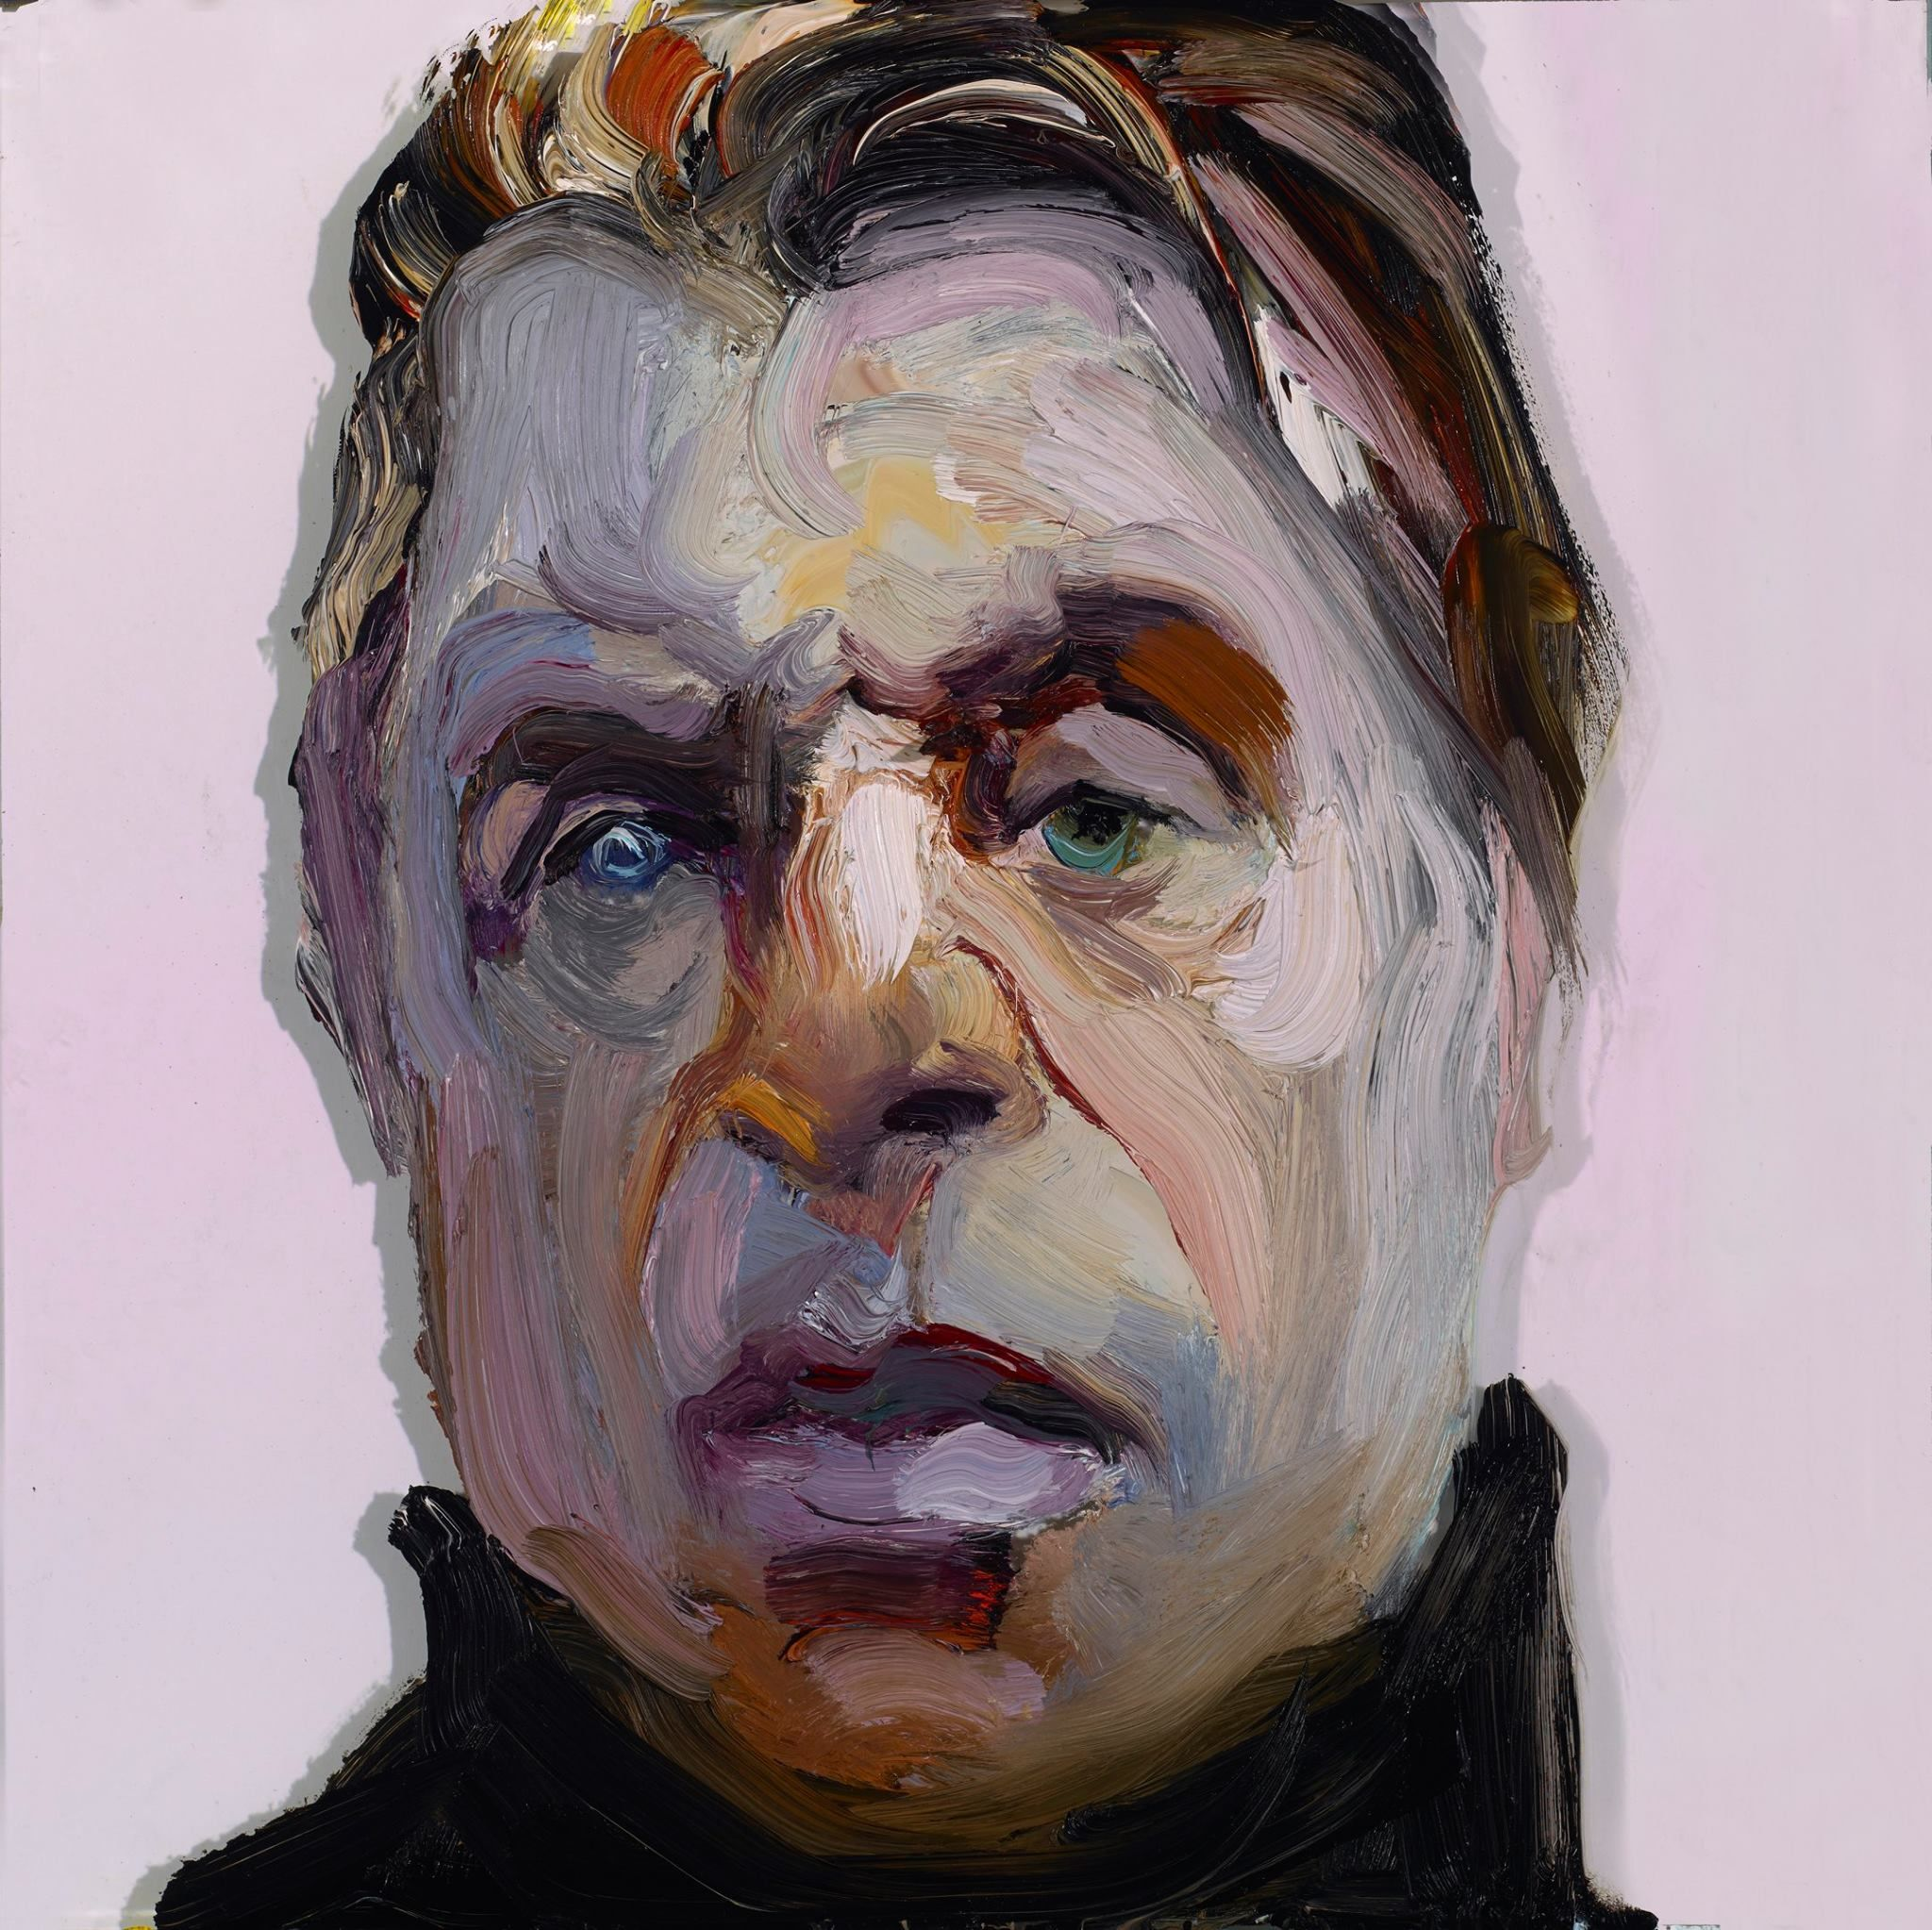 Painter Ray Turner - Foes and Heroes Francis Bacon 12 x 12 inches o/g 2014  http://rayturner.us/works/population/